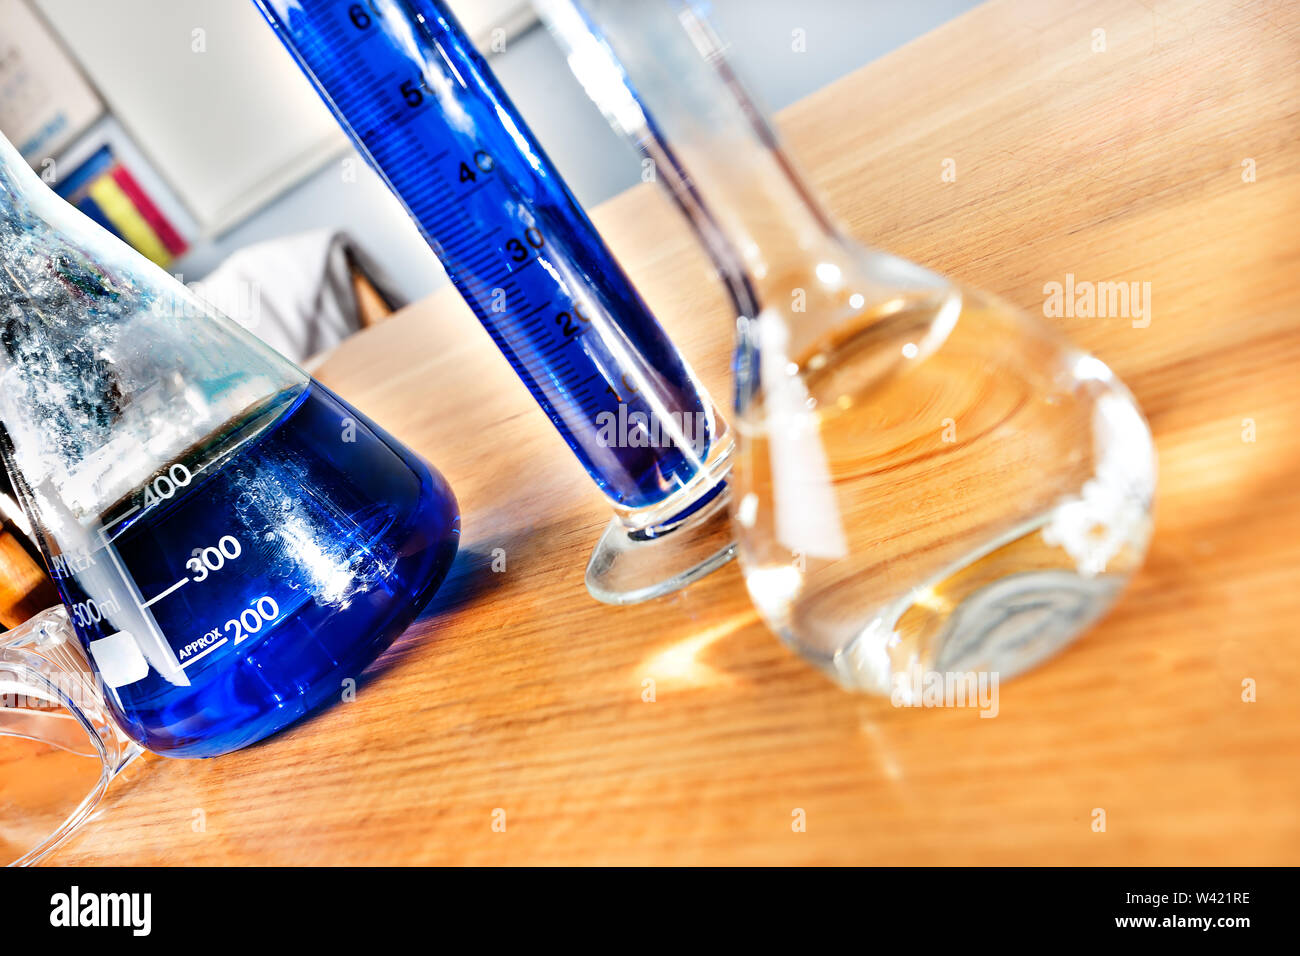 Science equipment in a laboratory, including beakers and tubes with blue liquid on a wooden table closeup Stock Photo